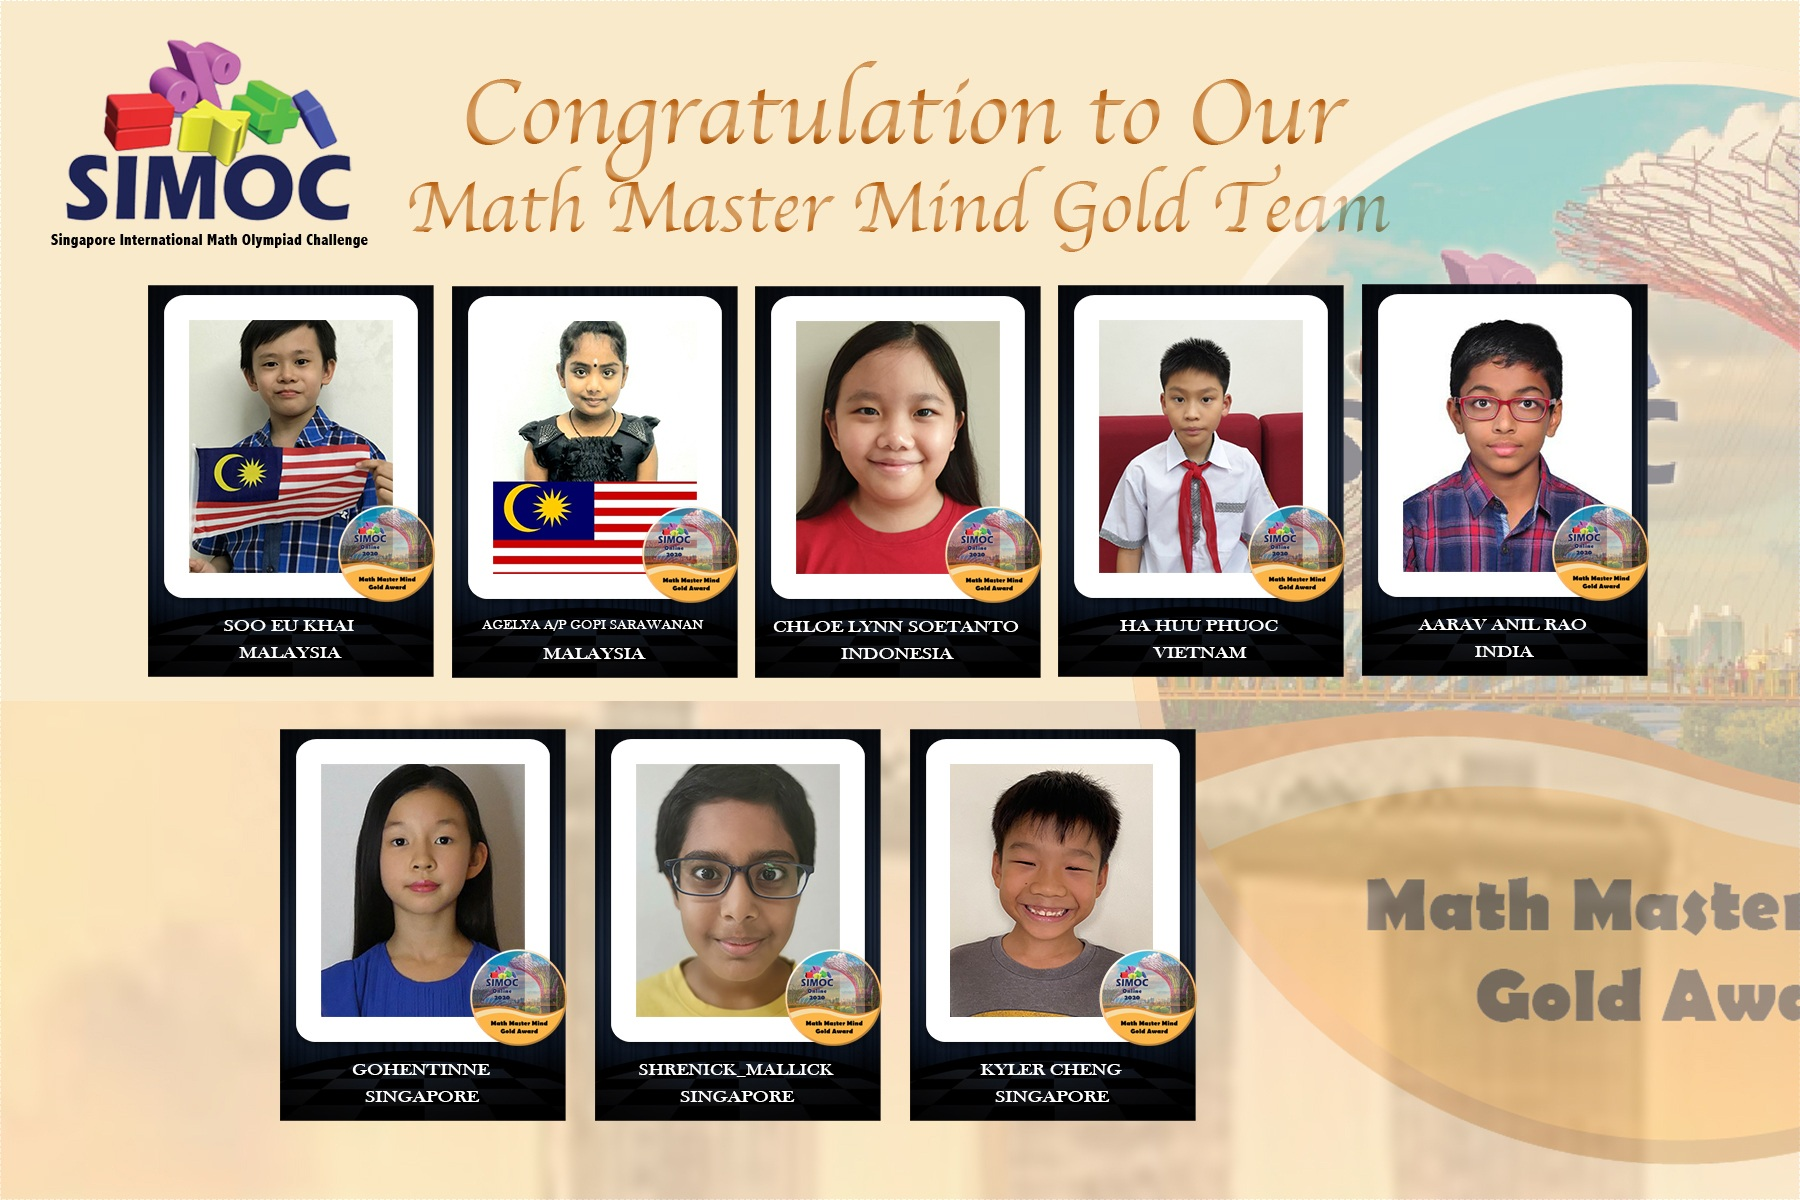 SIMOC-Math-Master-Mind-Lower-division-Gold-1